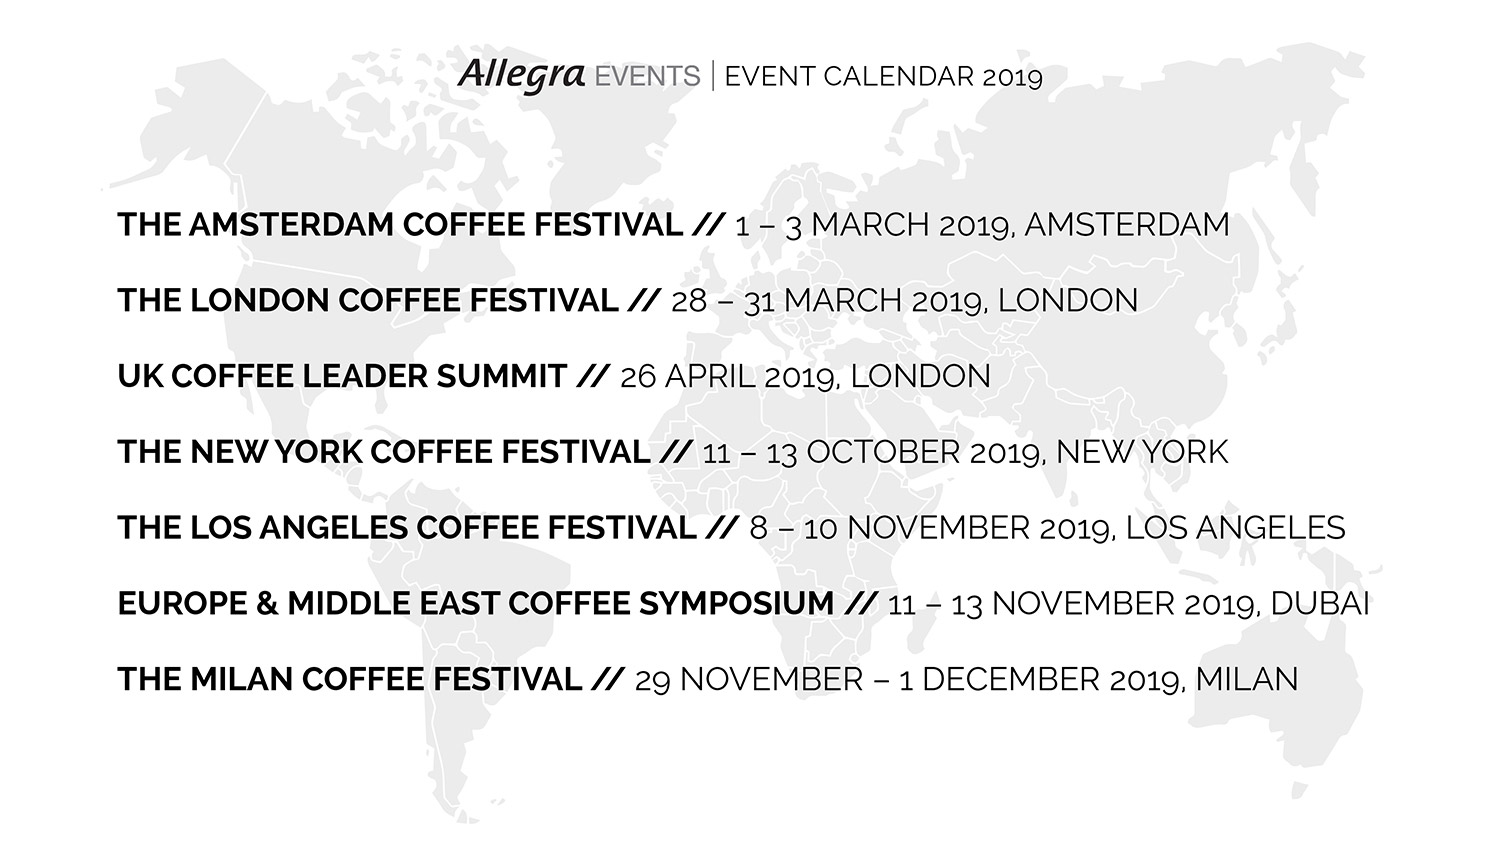 London Events Calendar 2019 Other Events   Europe & Middle East Cofffee Symposium 2019